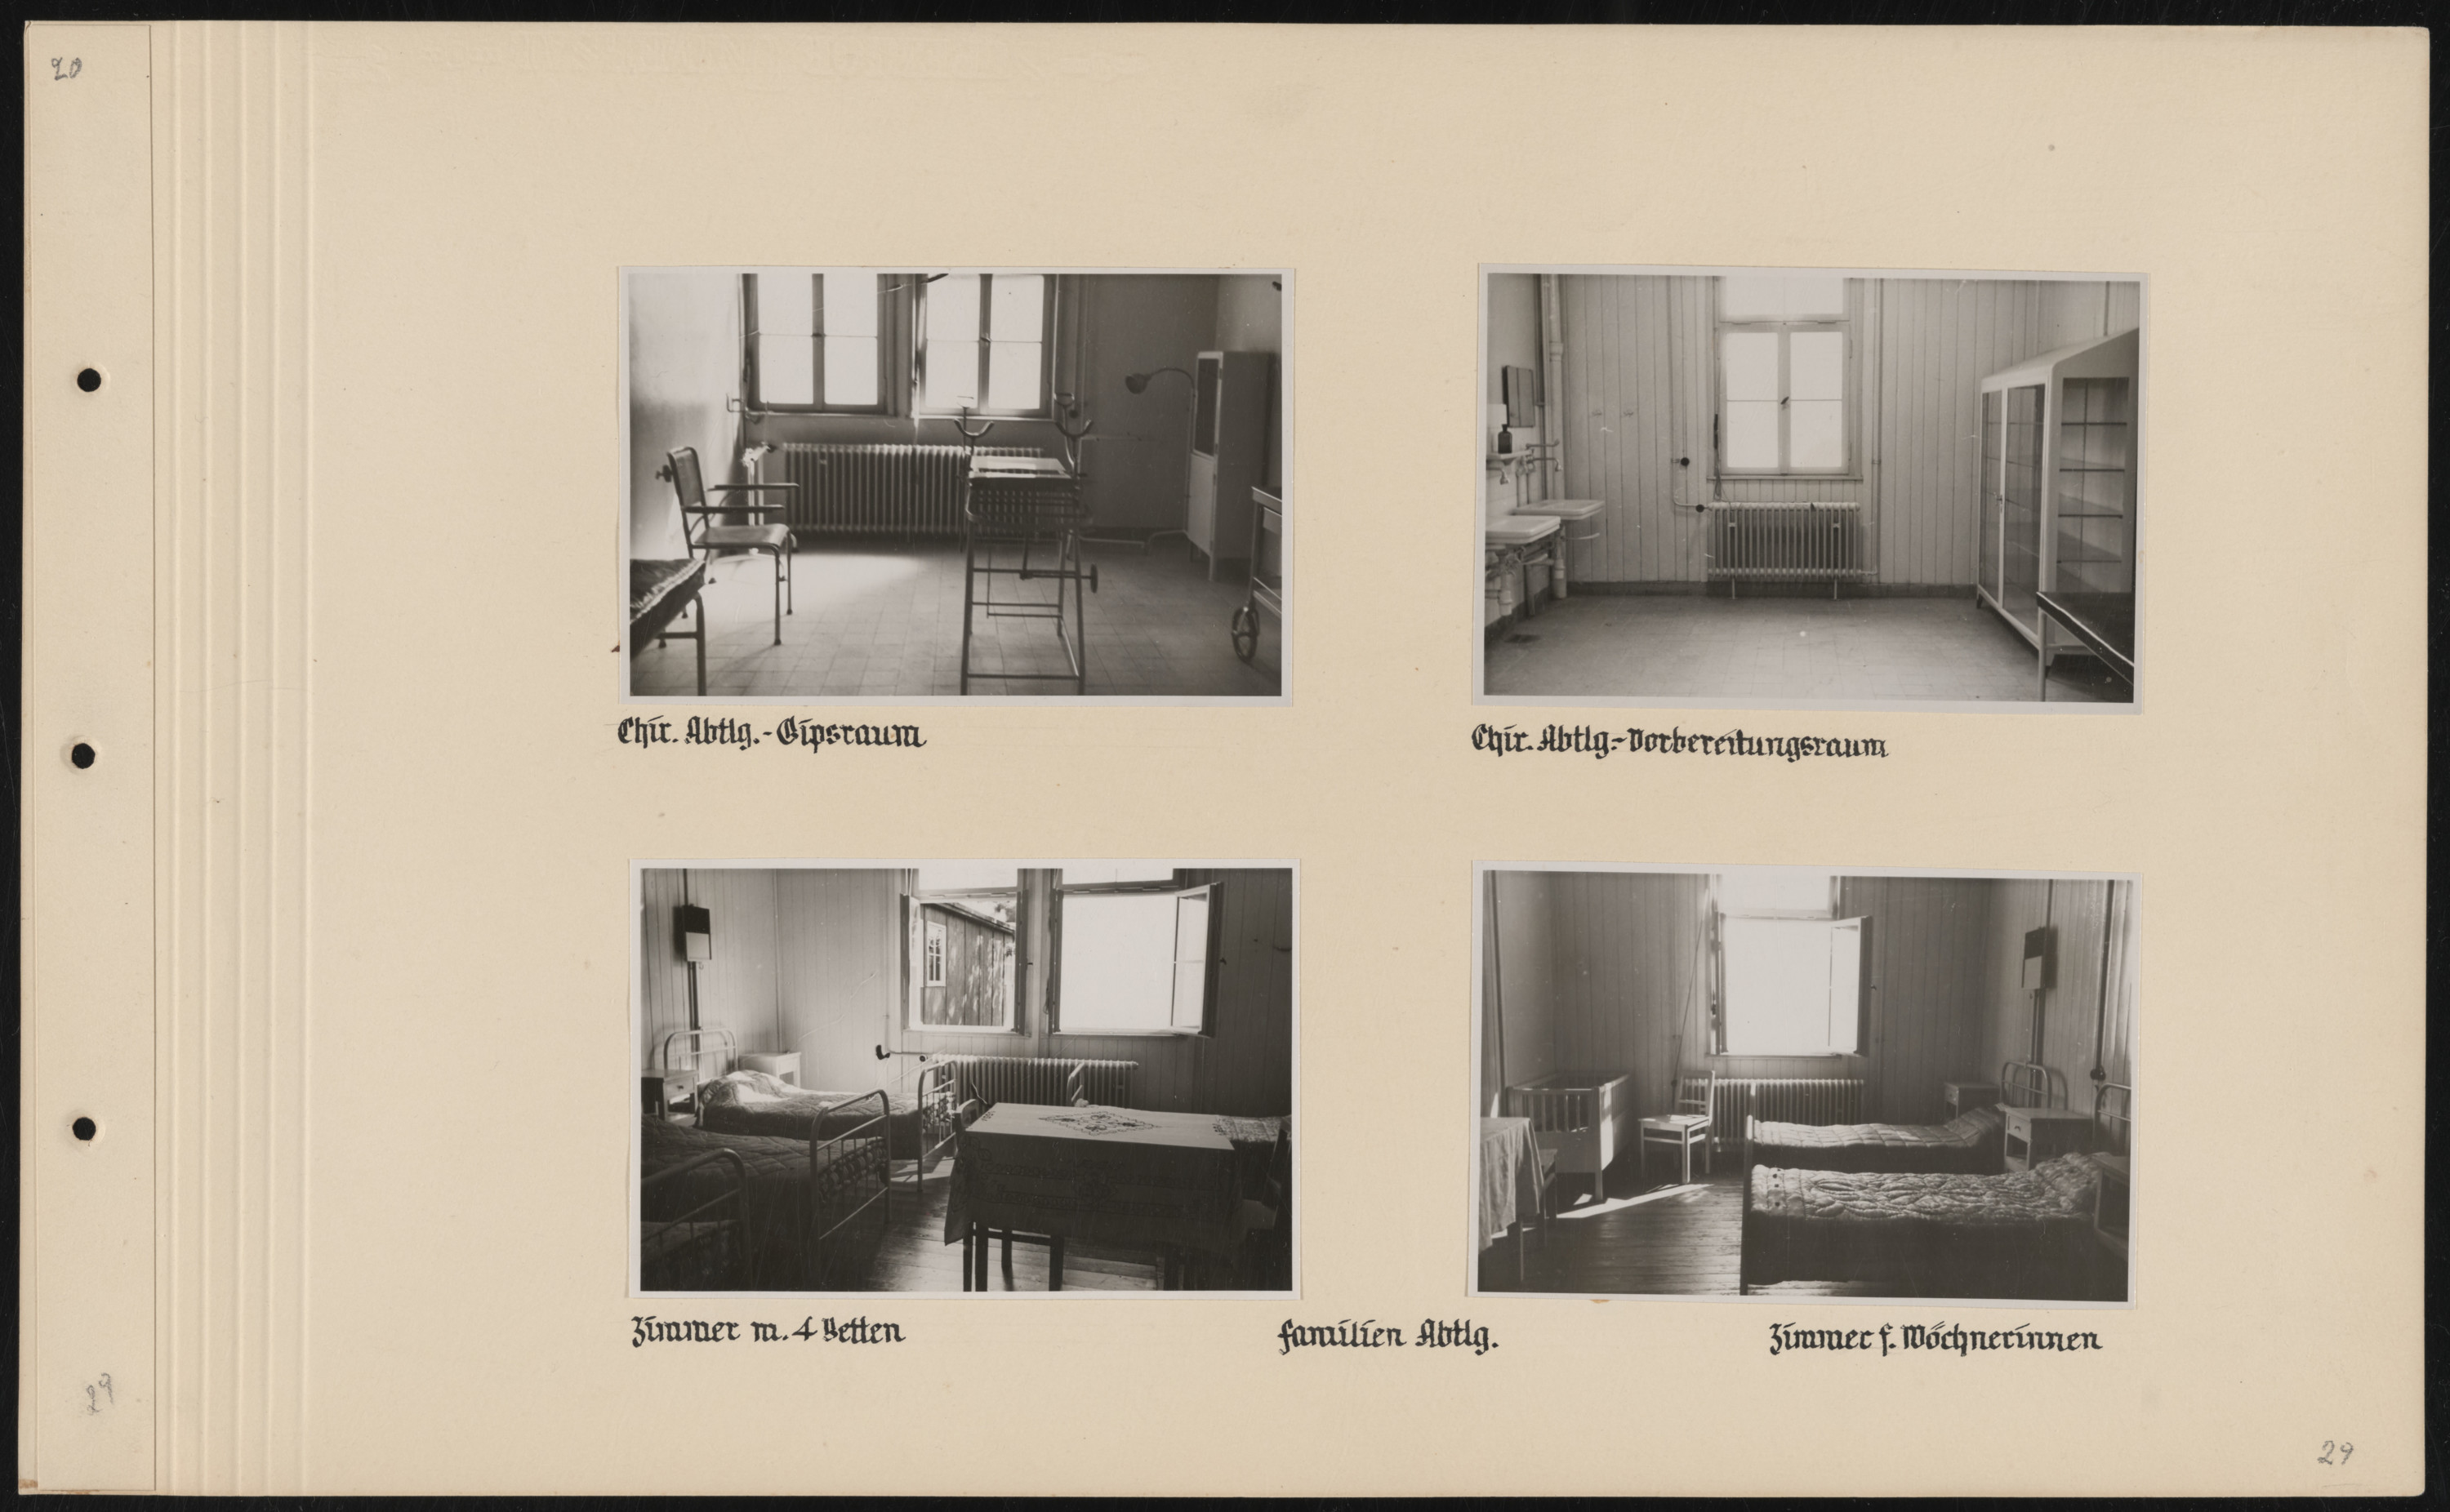 Page from a photo album documenting the construction of the SS Truppenlazarett, the SS troop hospital in Auschwitz.